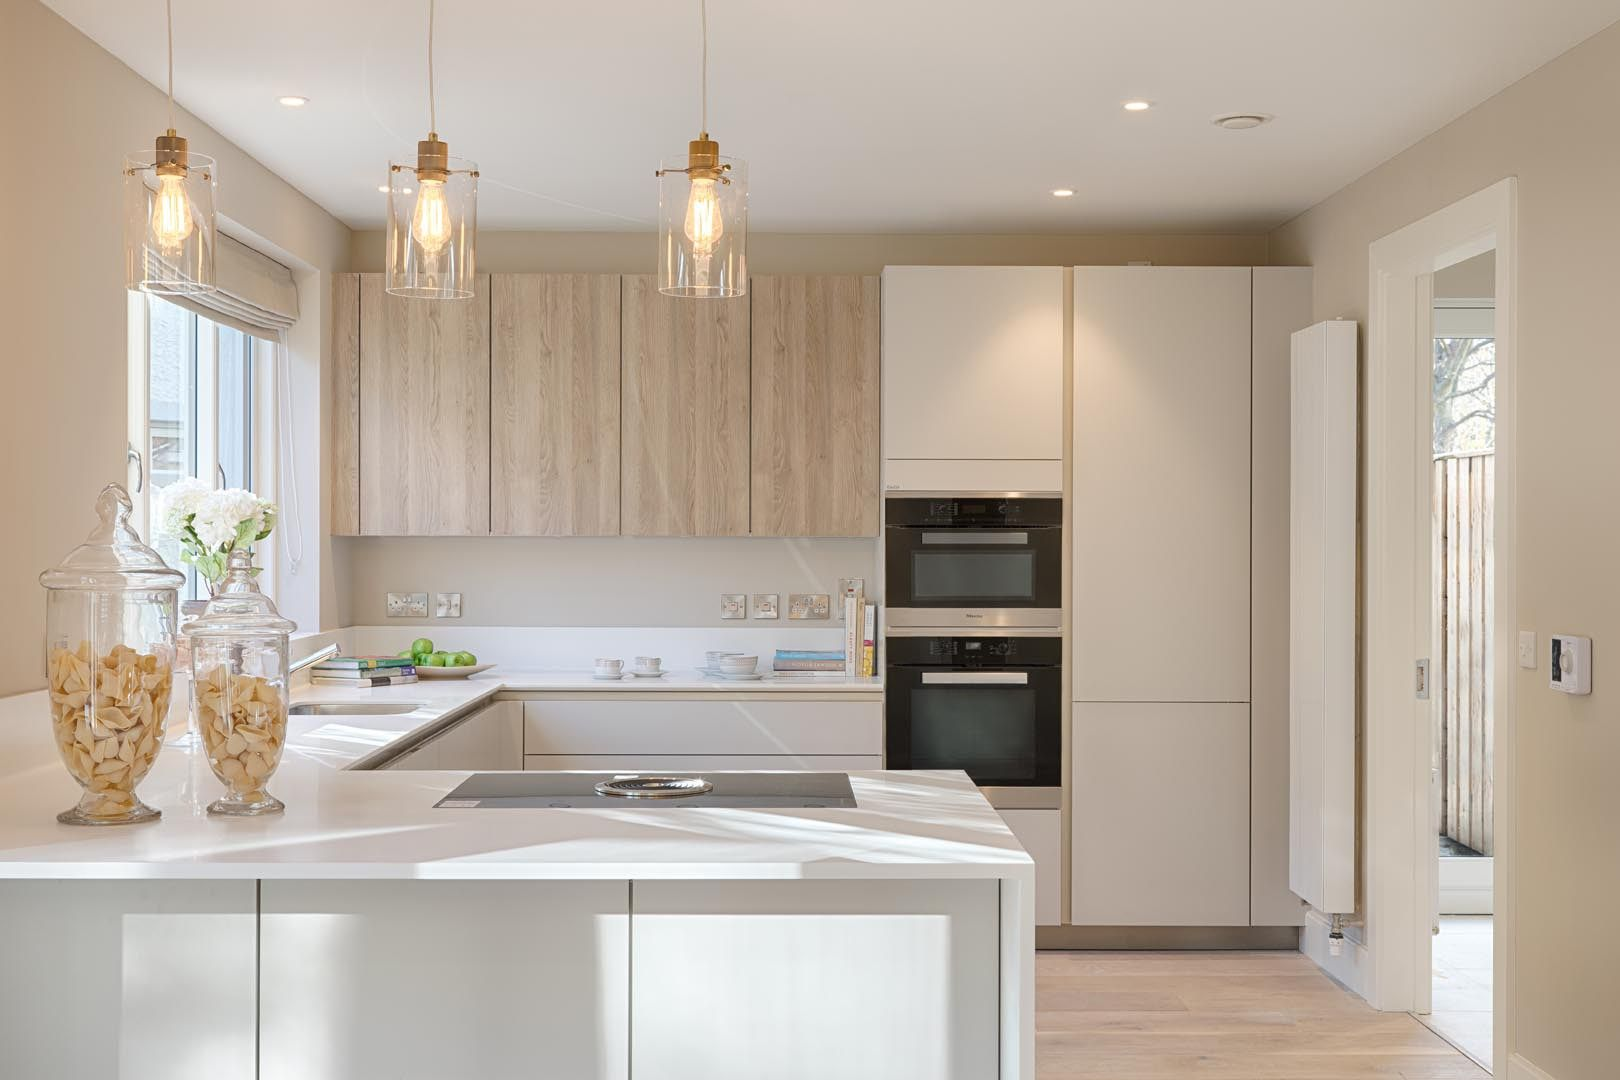 White Wood And Plenty Of Sunlight Siematic Kitchen From Dublin Ireland Kitchen Decor Apartment Stylish Kitchen Life Kitchen